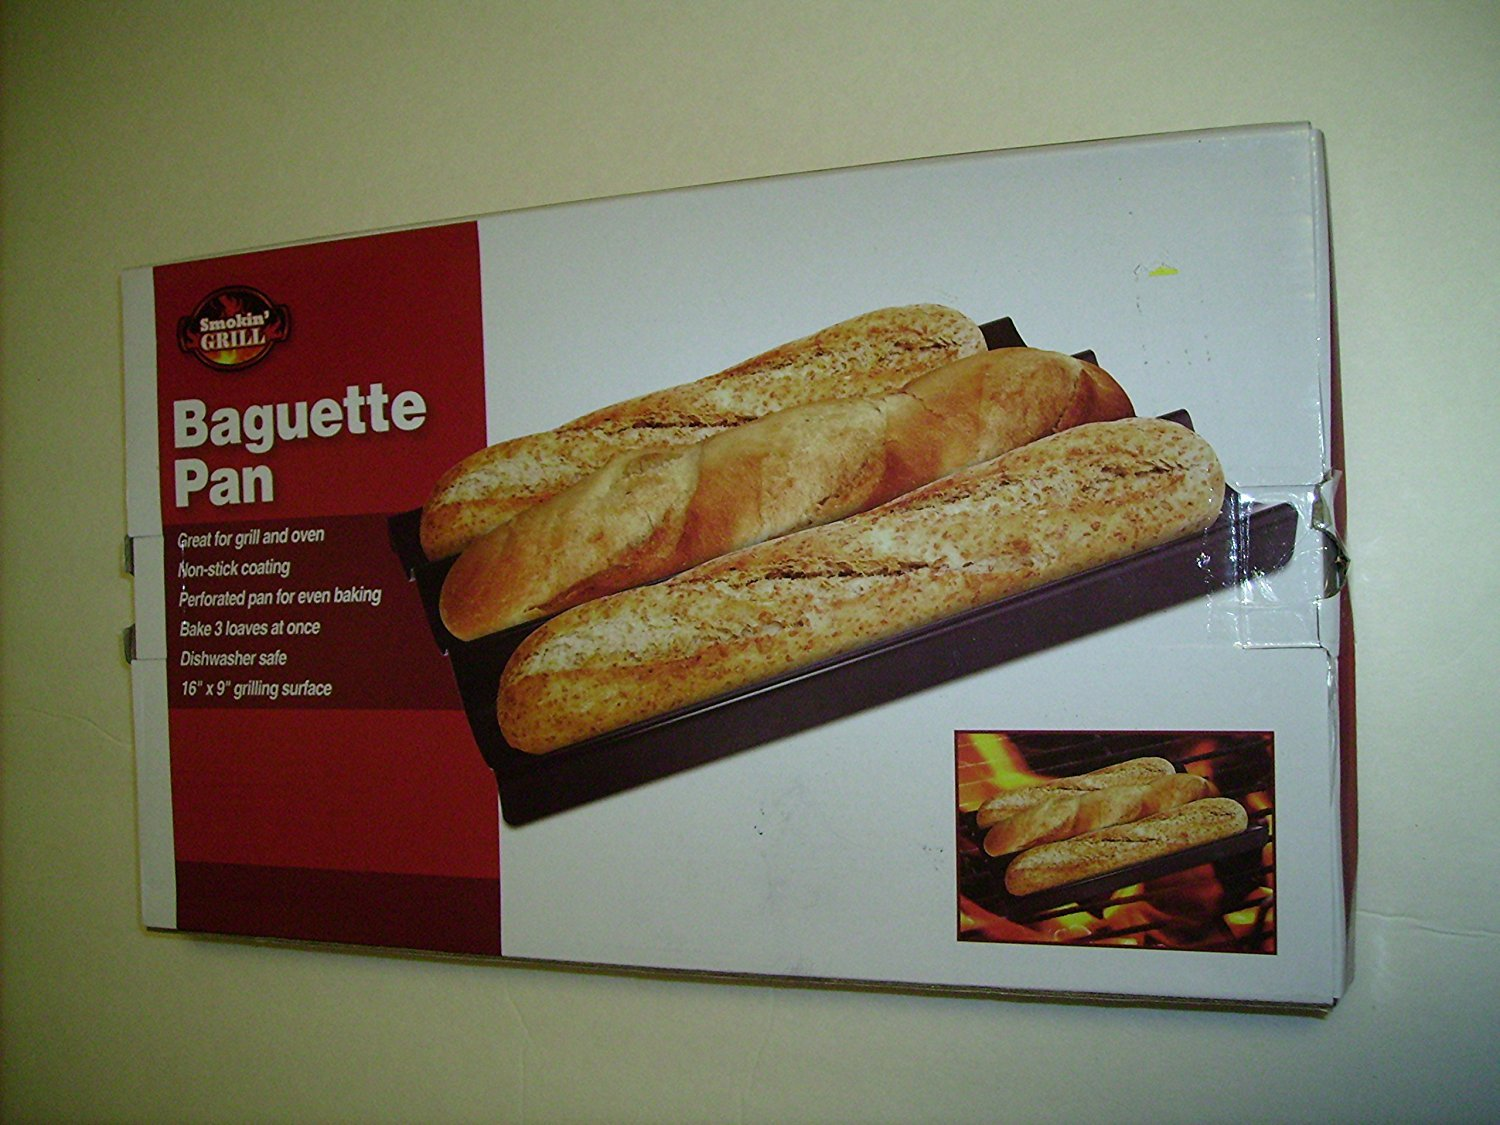 Smokin Grill 3-LOAF BAGUETTE PAN -NON-STICK For Every Day Usage NV-03625